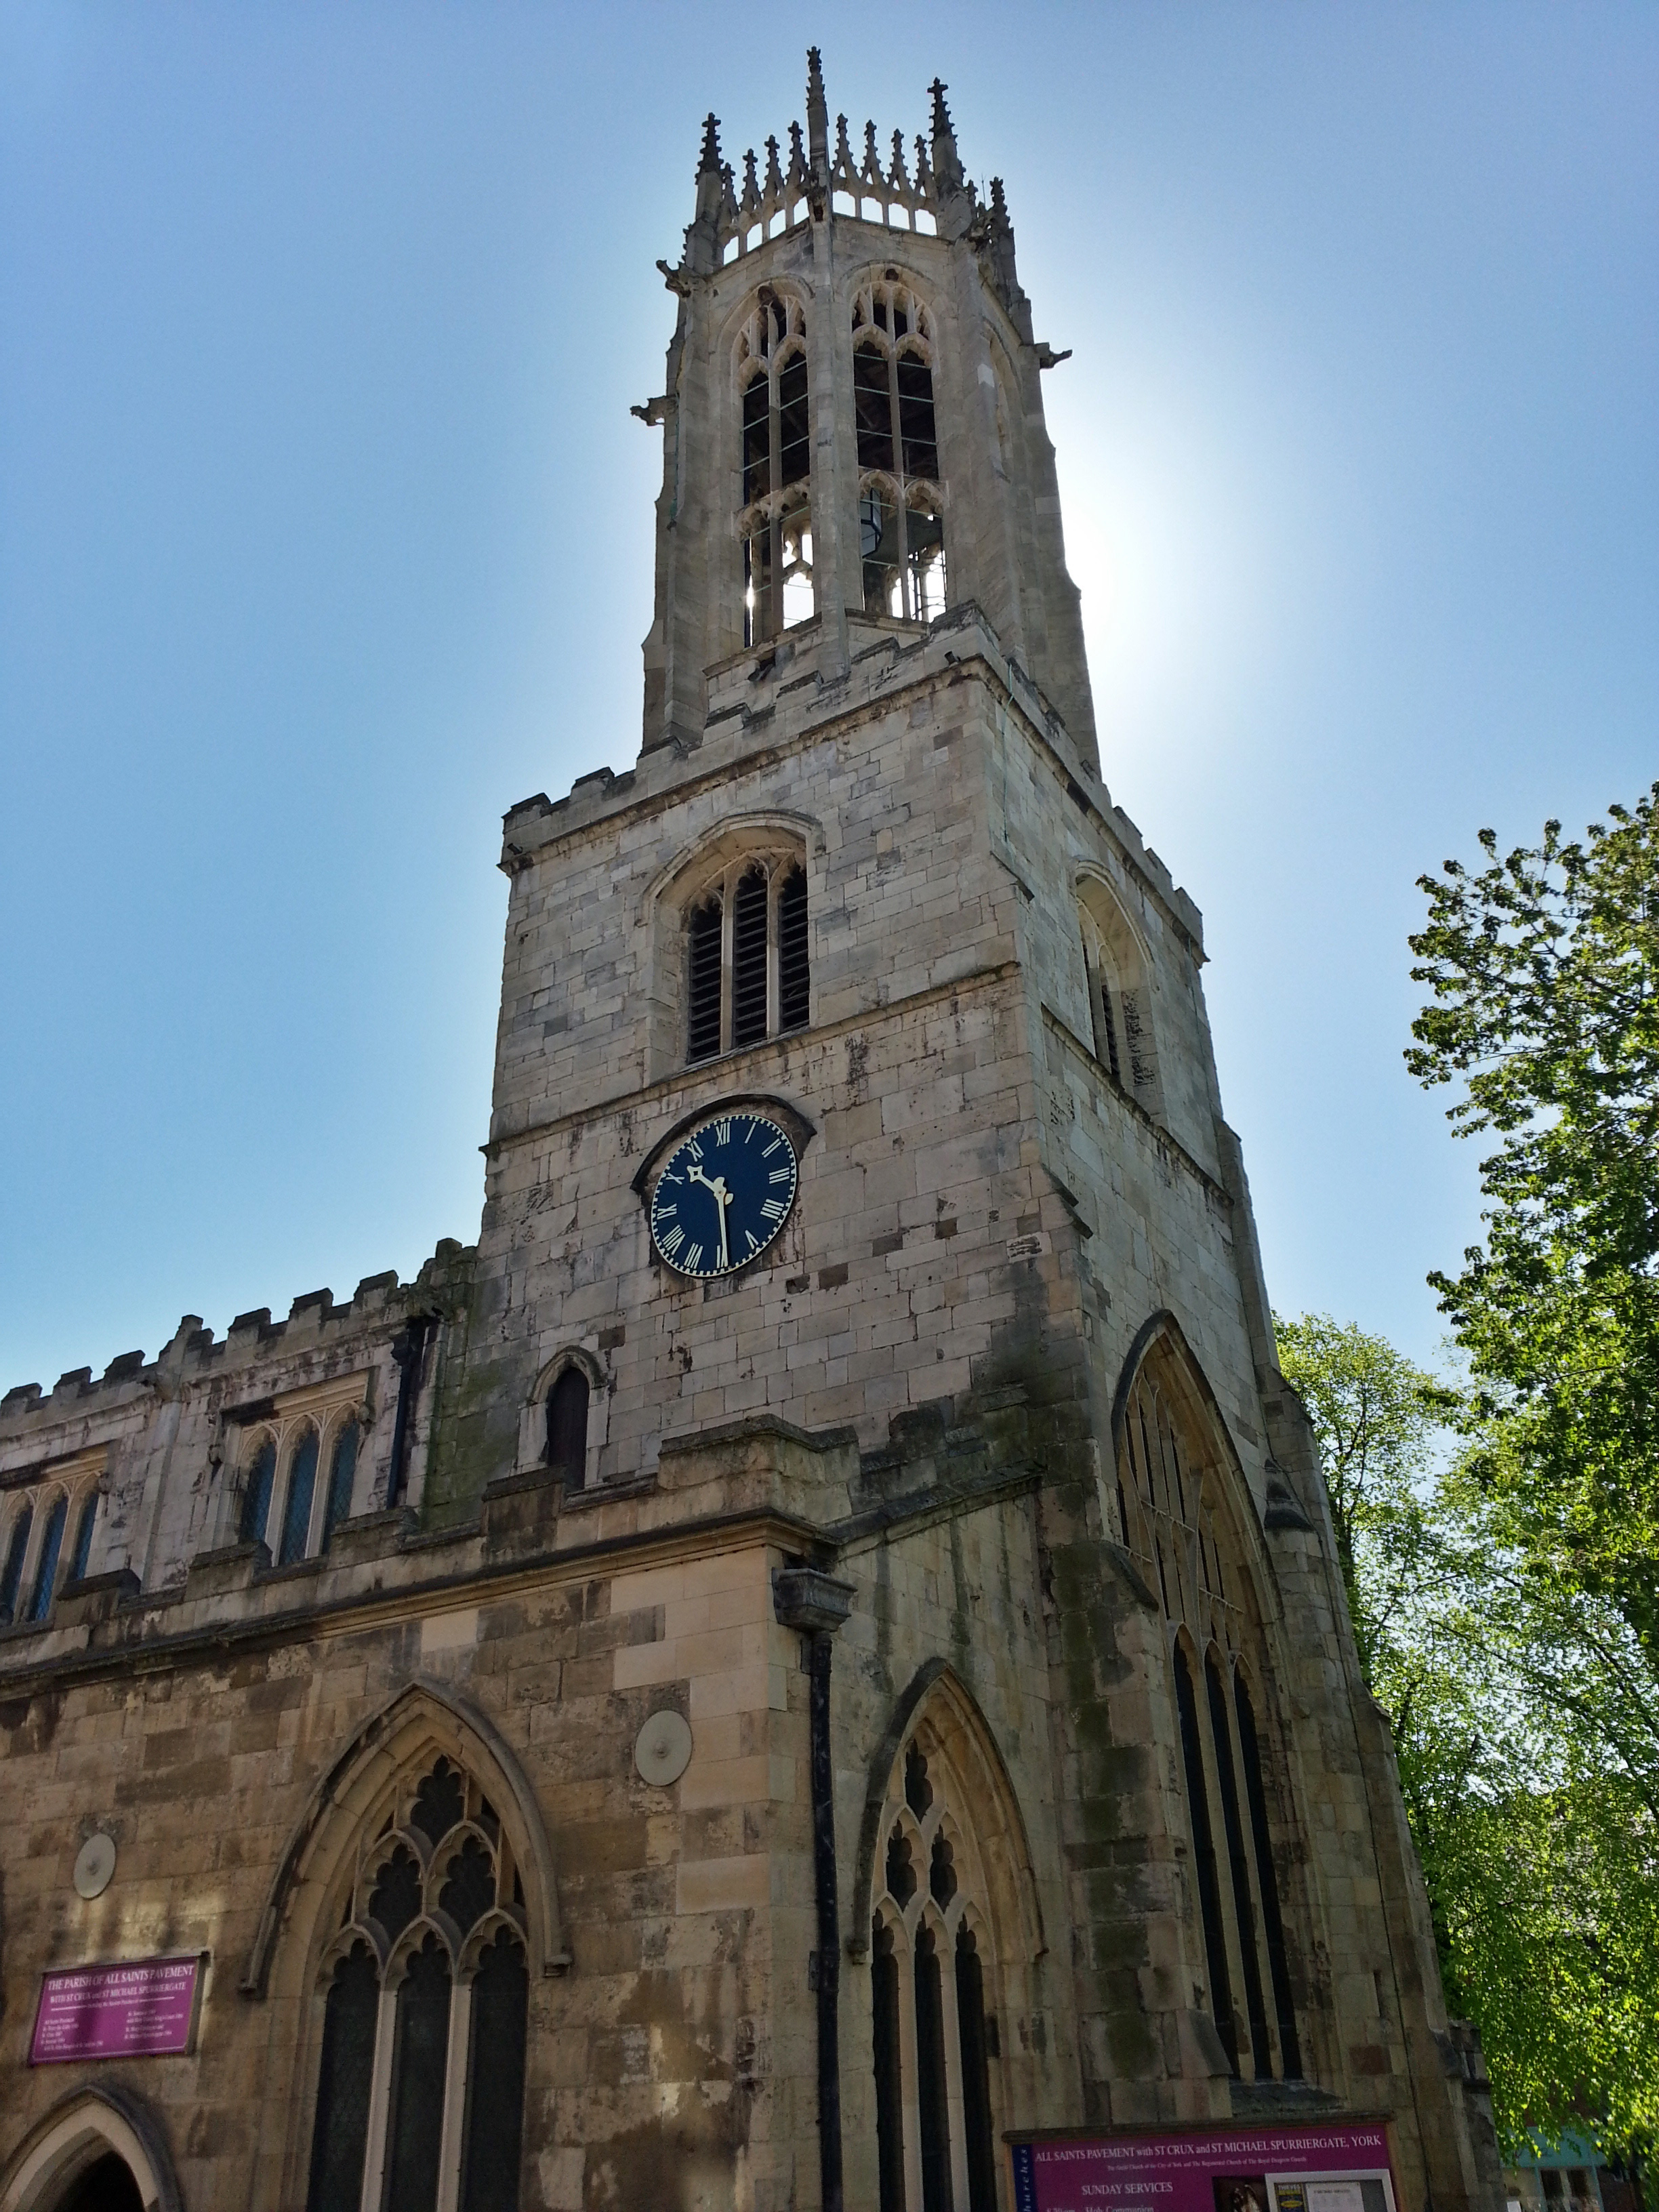 All Saints Church in York, clear blue sky